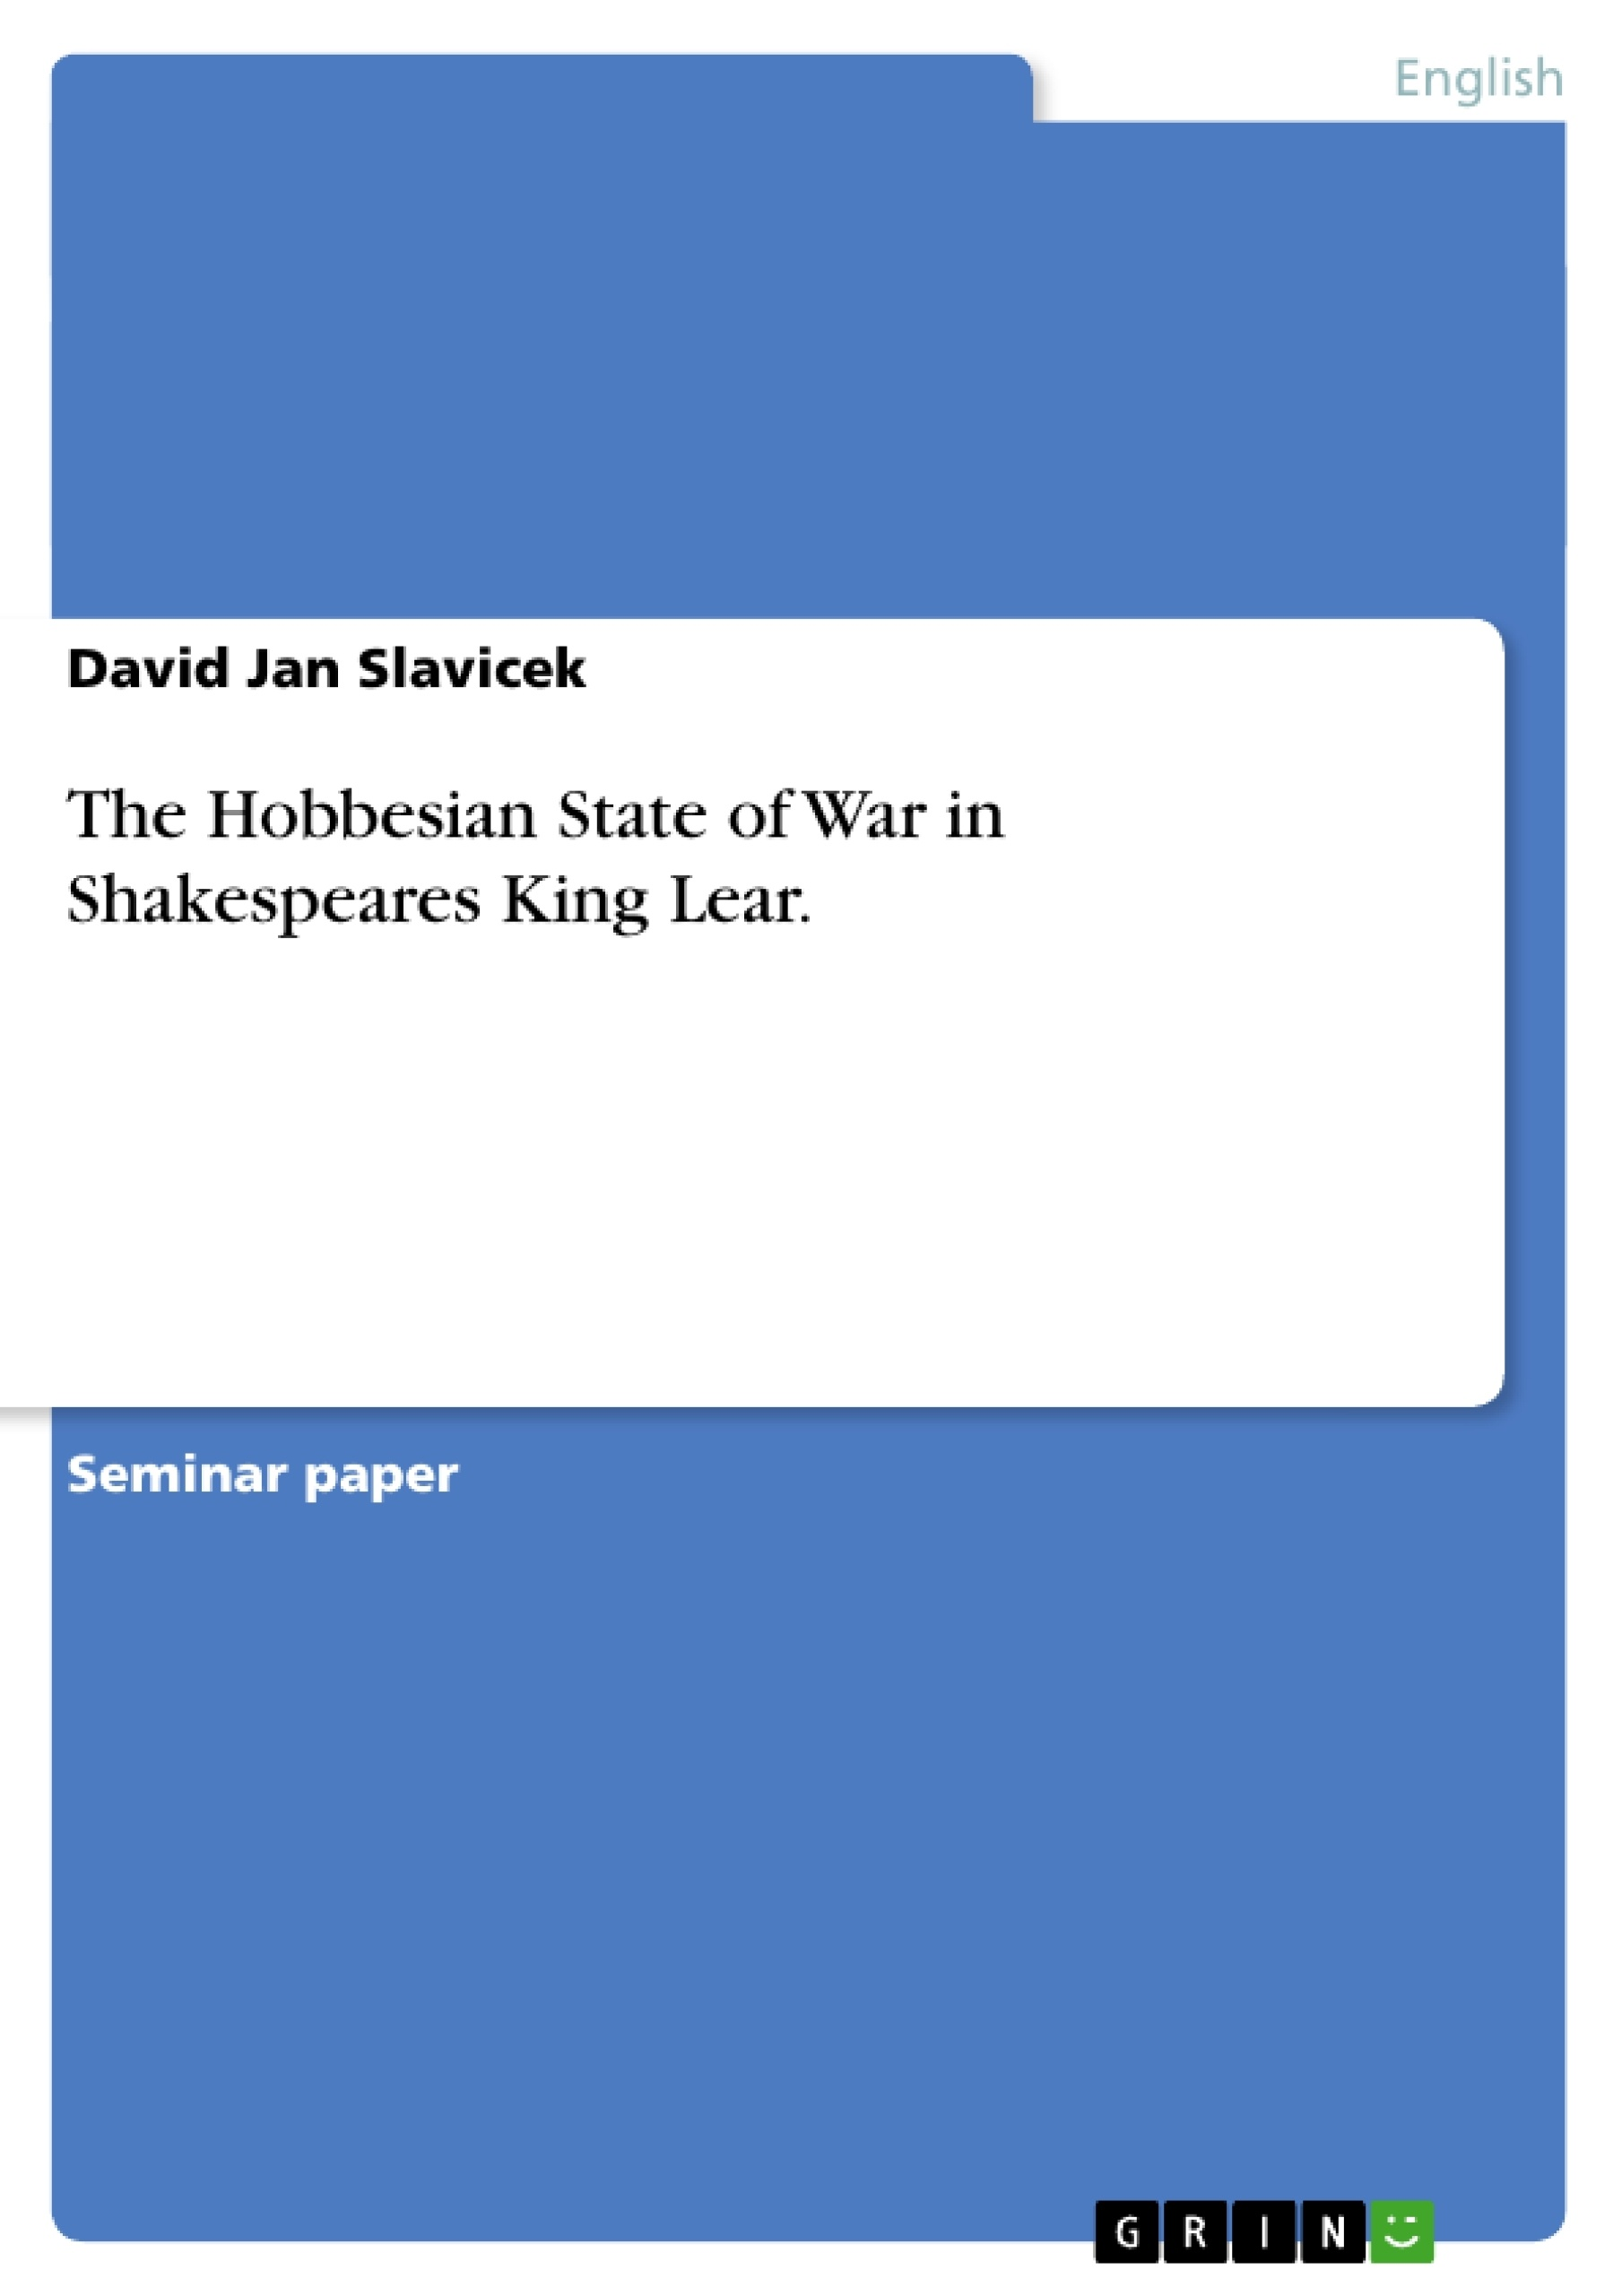 hamlet soliloquy essay conclusion Hamlet soliloquy essay introduction, soliloquy essay - theatre and language in the soliloquies of shakespeares hamlet forts army) there are no others in the last.